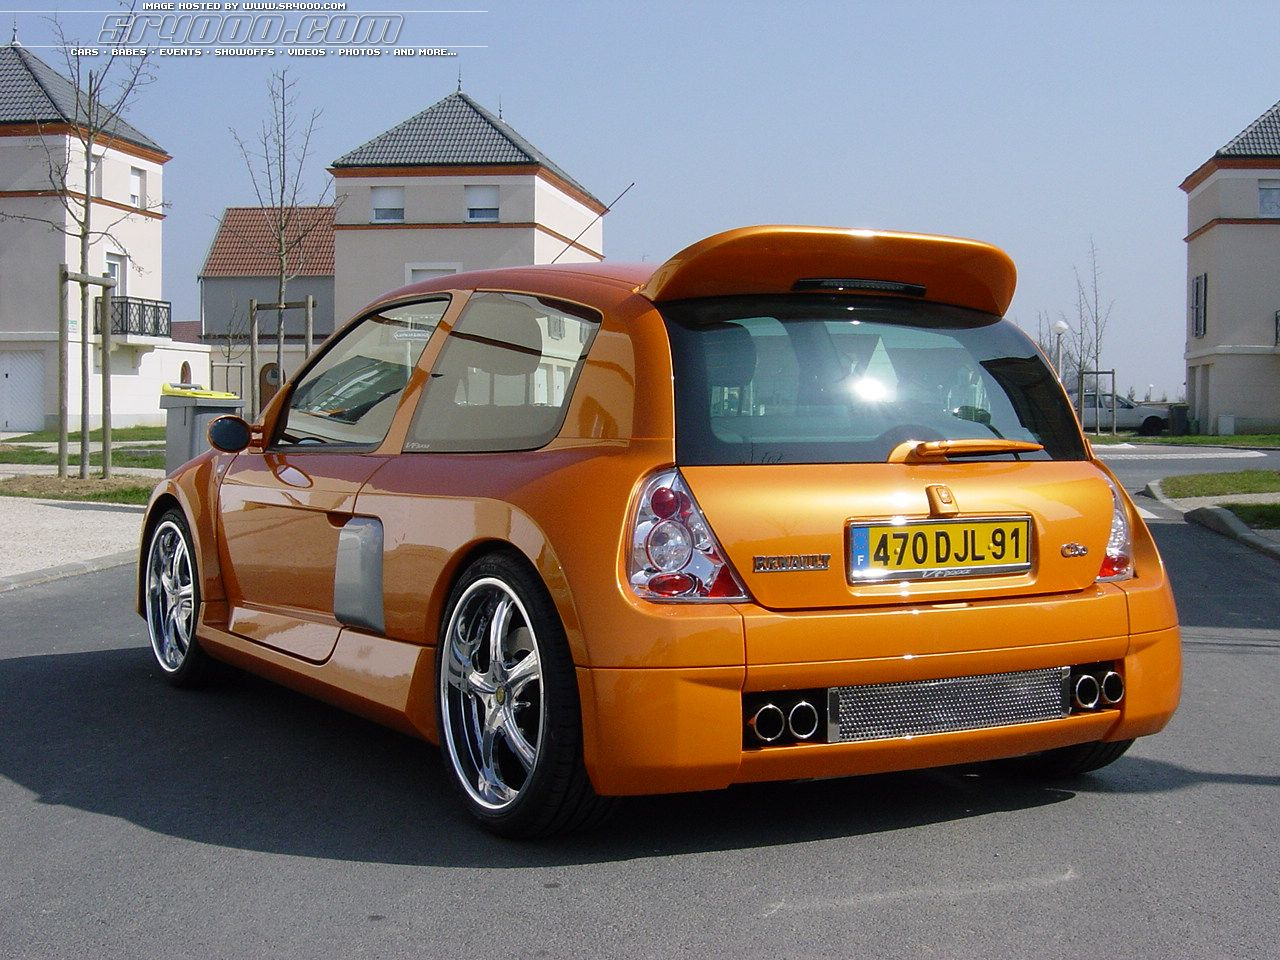 View Of Renault Clio Iii 1 6 Photos Video Features And Tuning Of Vehicles Gr8autophoto Com